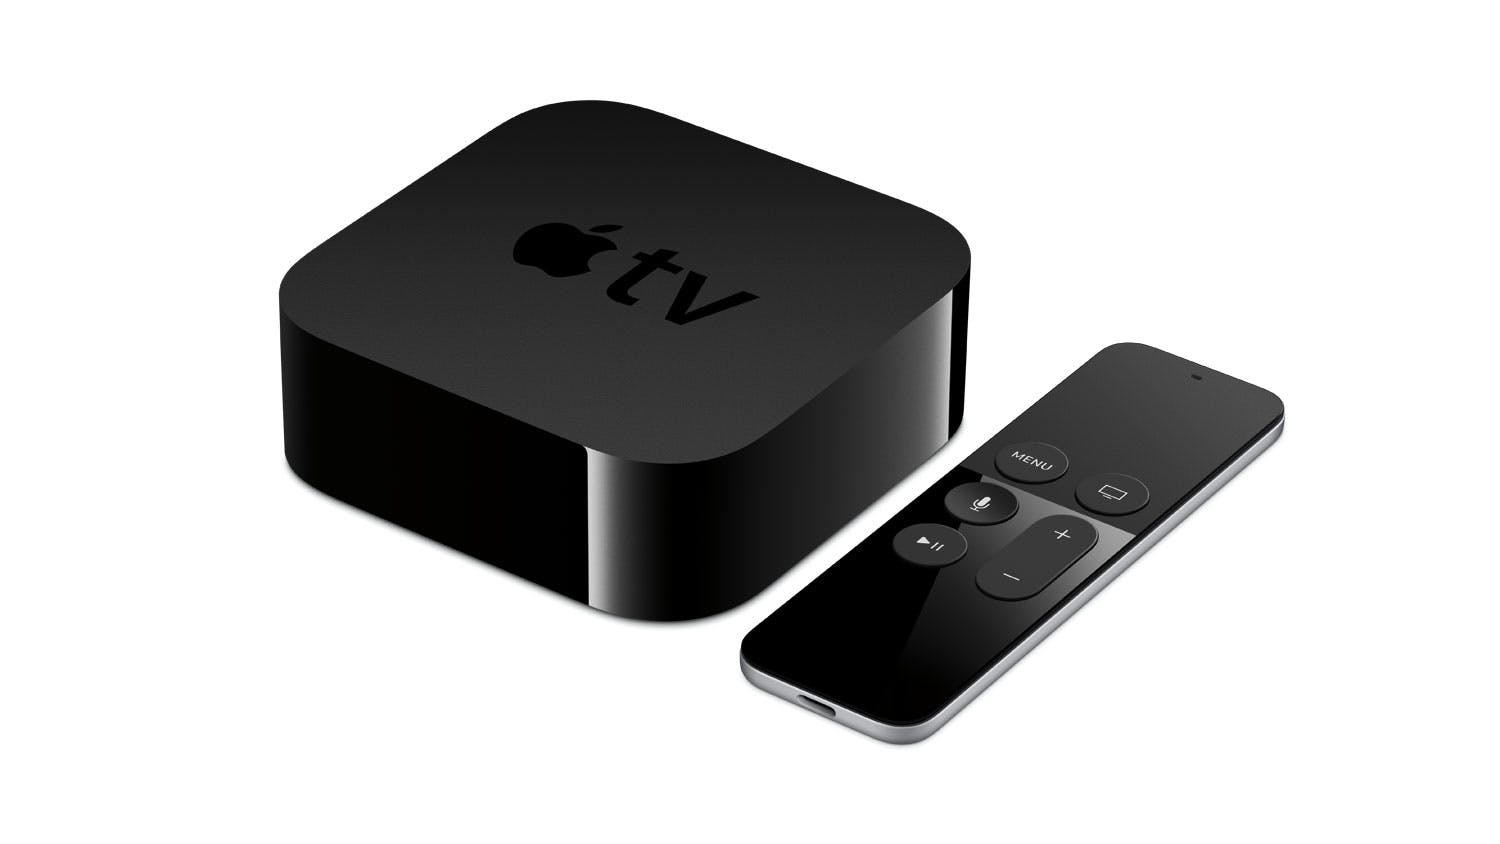 0857-appletv-device-stb